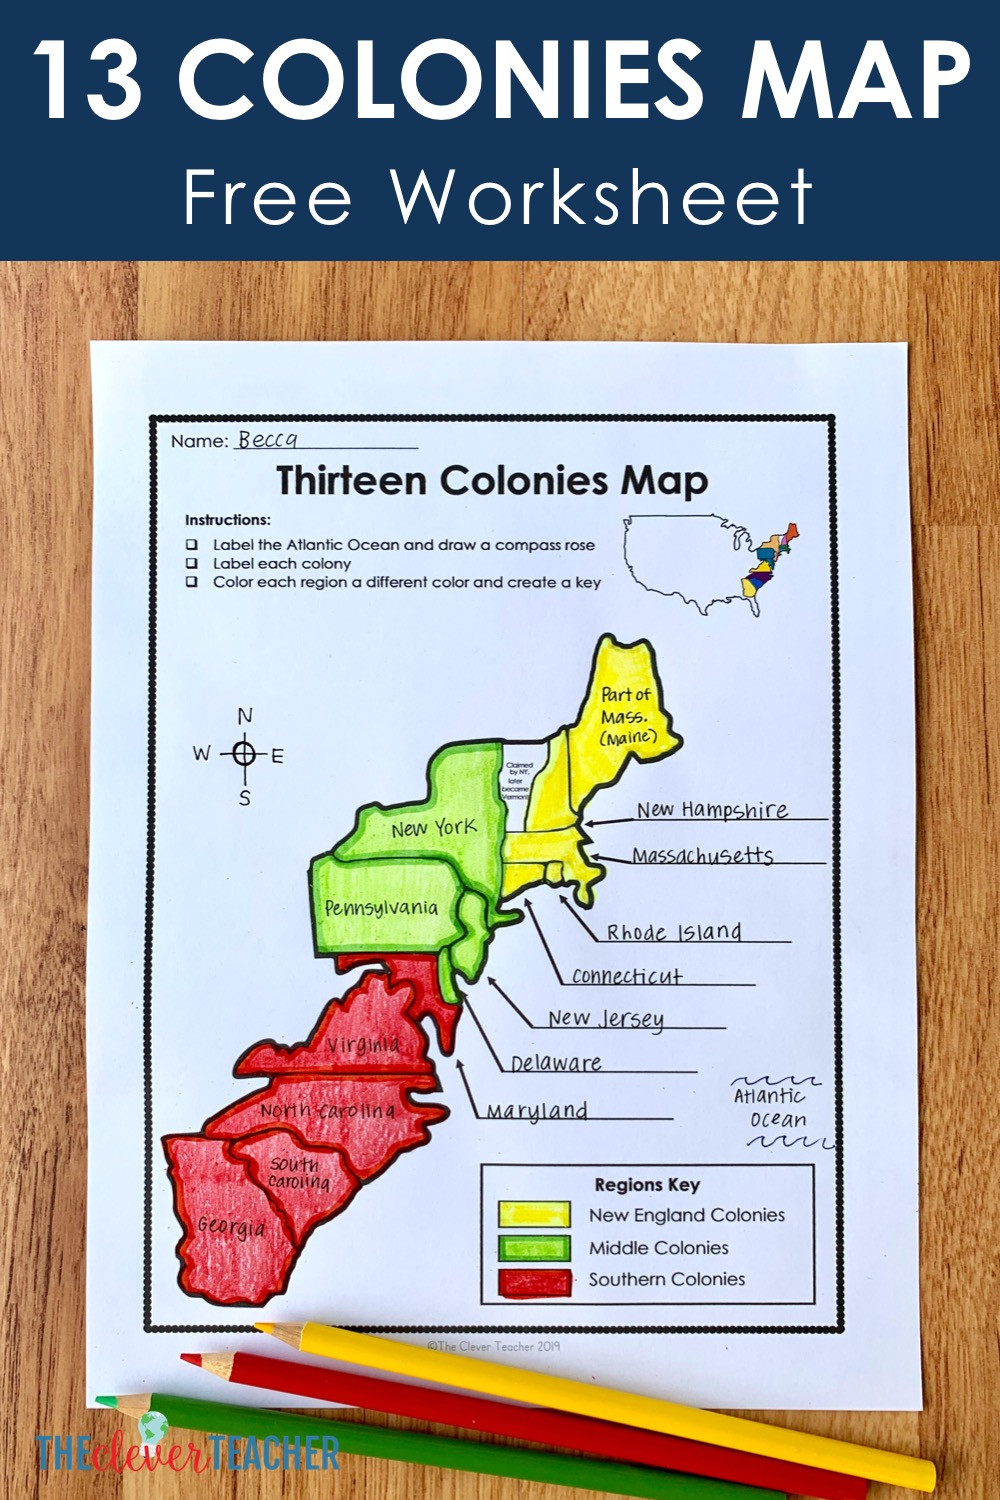 Florida History Worksheets 4th Grade 13 Colonies Free Map Worksheet and Lesson for Students